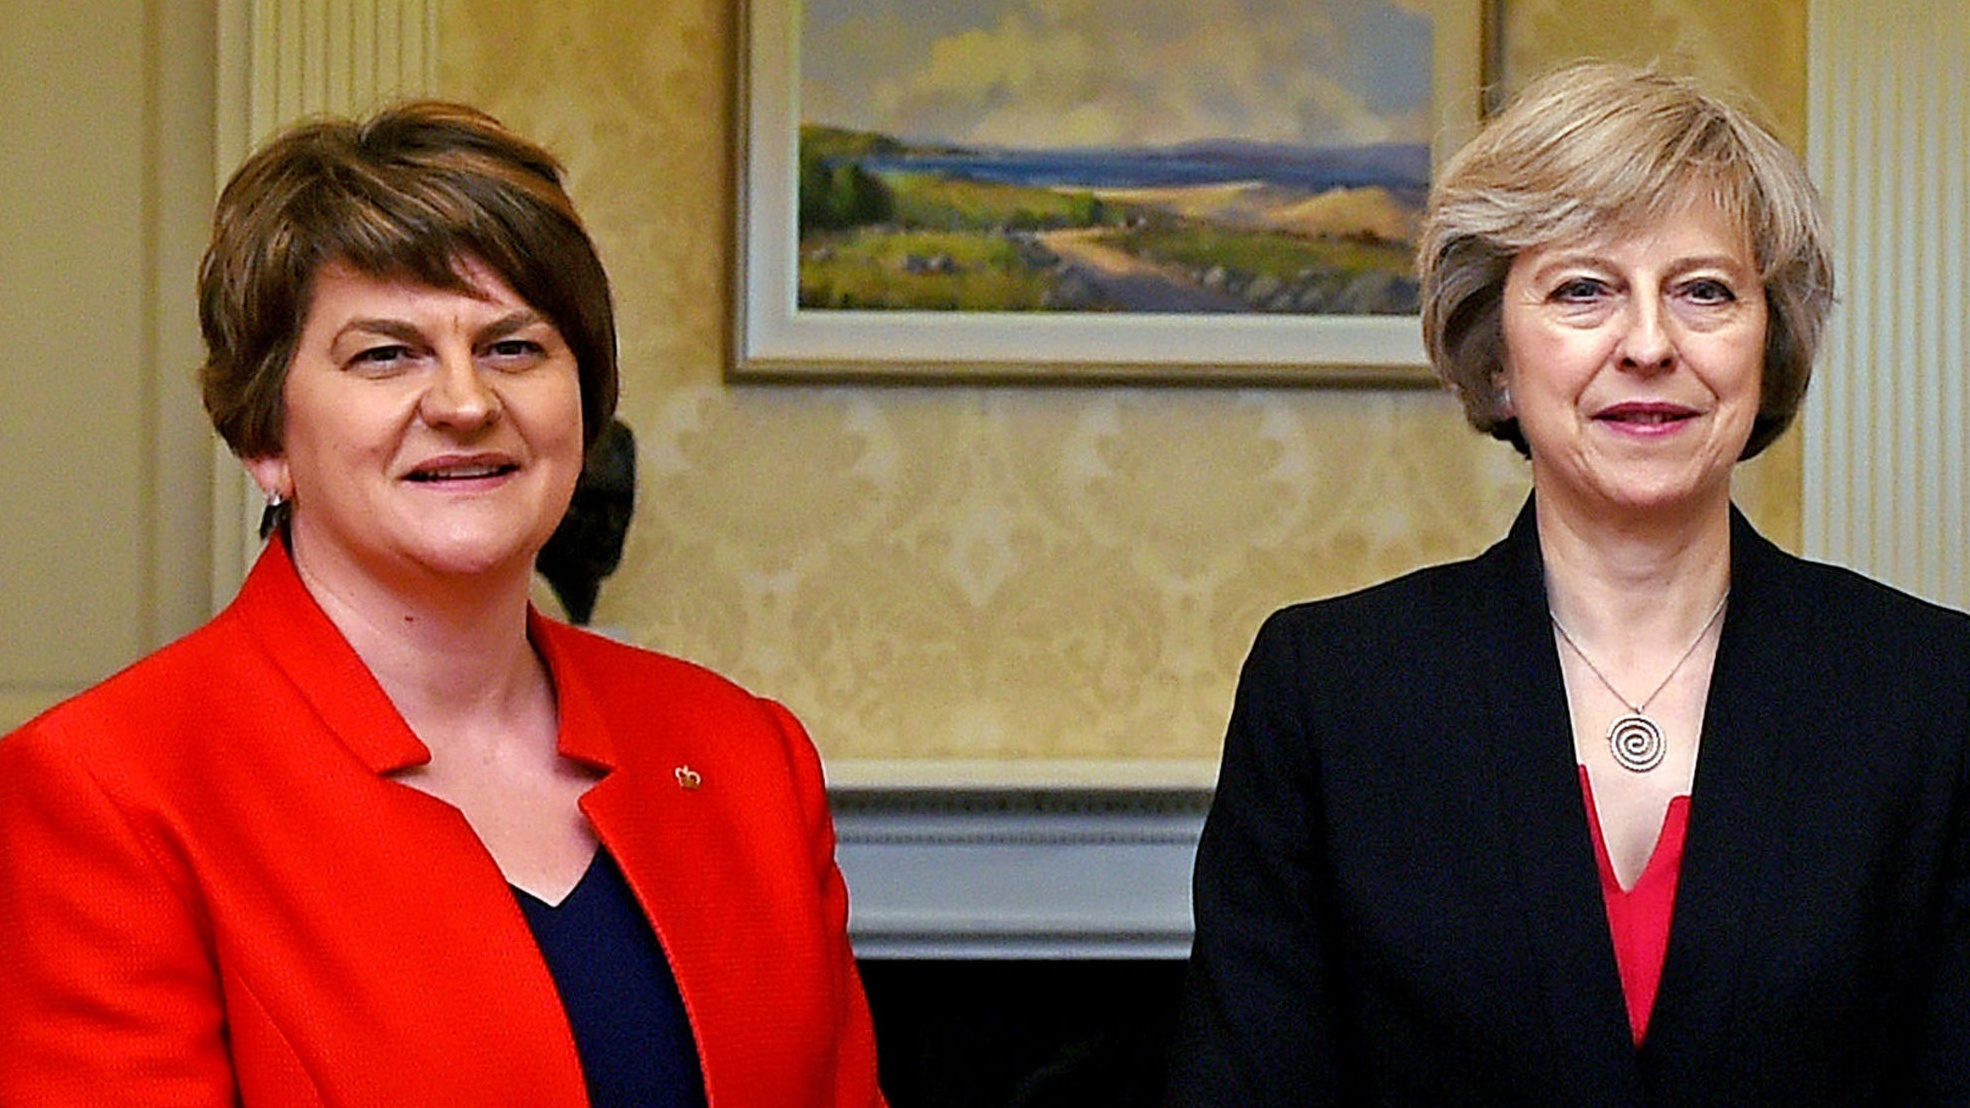 DUP could seek cut in air tax in talks with Prime Minister